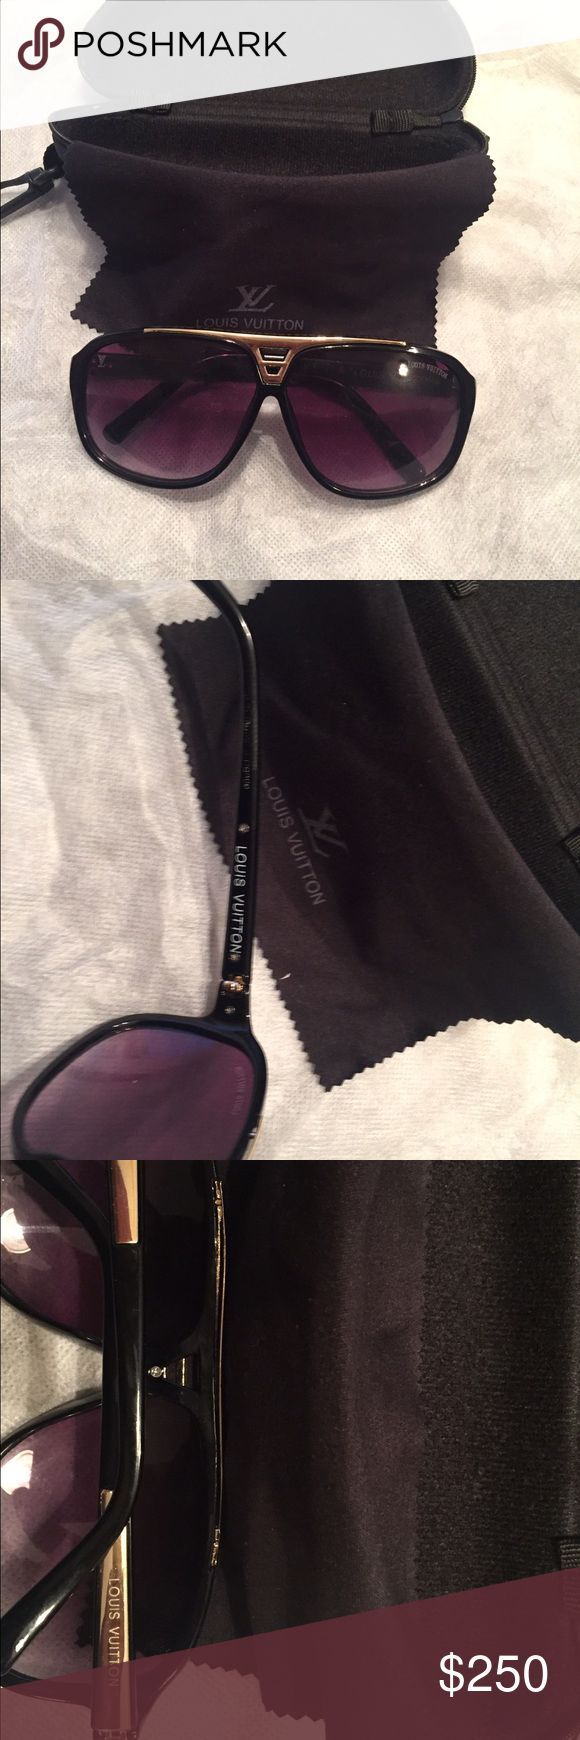 Authentic Louis Vuitton Evidence Sunglasses Black and gold. Comes with case and dust rag. 2014 model. NO TRADES. Will consider offers though. Louis Vuitton Accessories Glasses